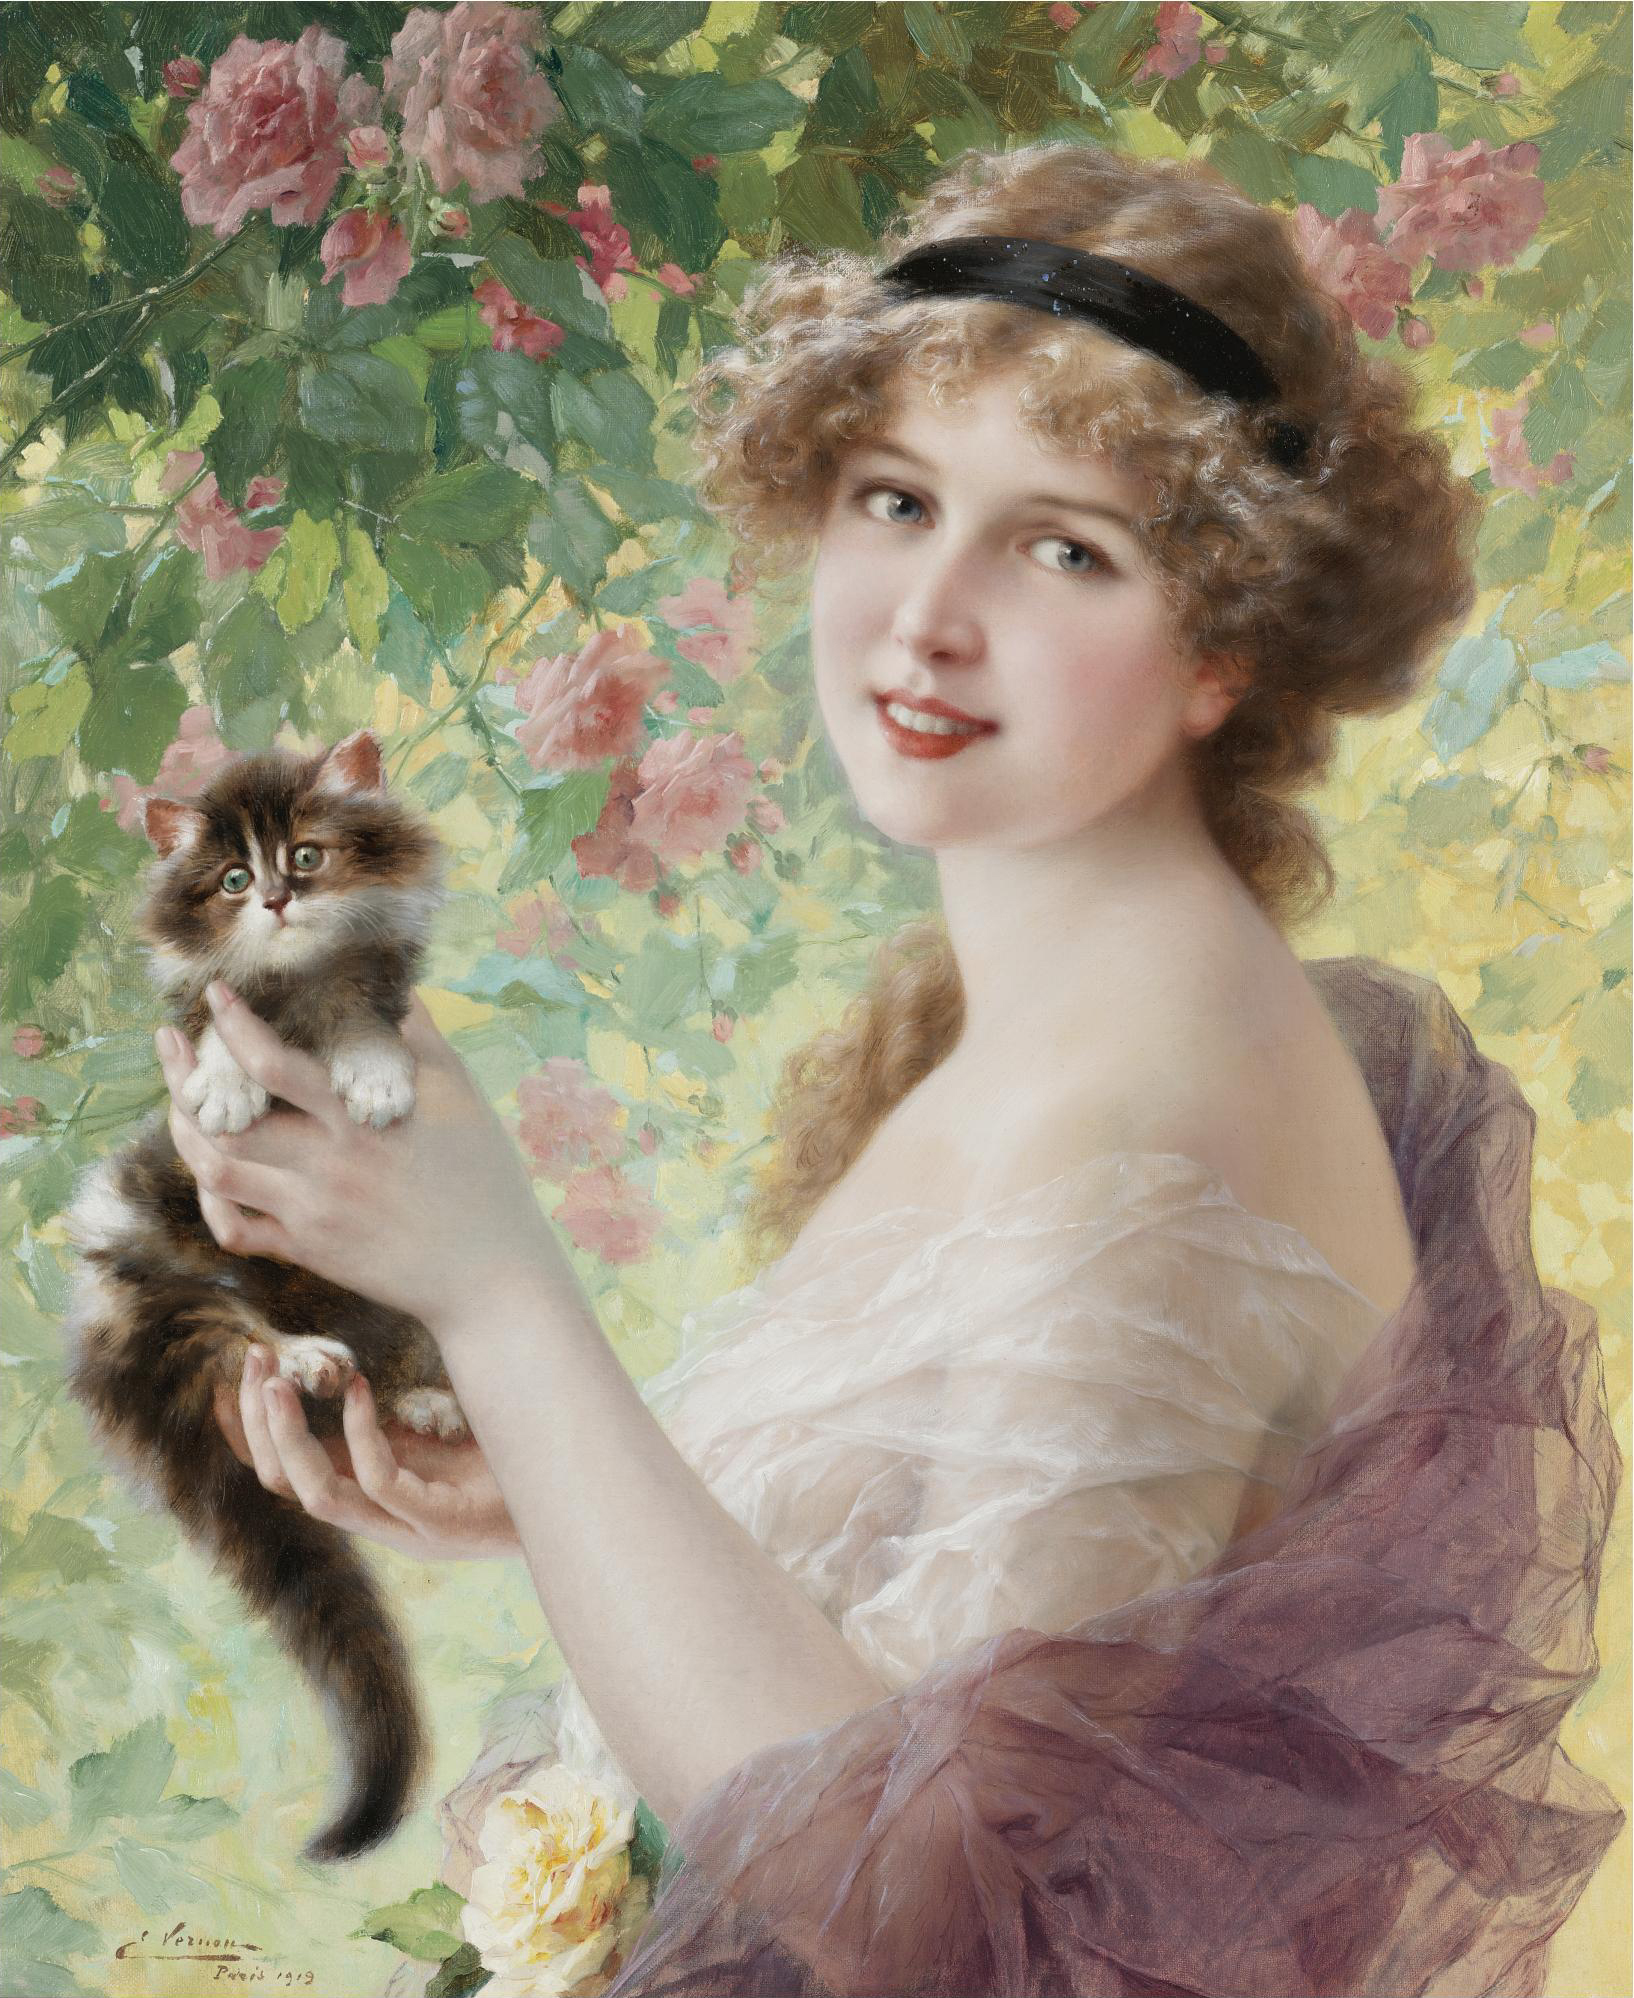 File:Son Petit Chaton by Emile Vernon.jpg - Wikimedia Commons